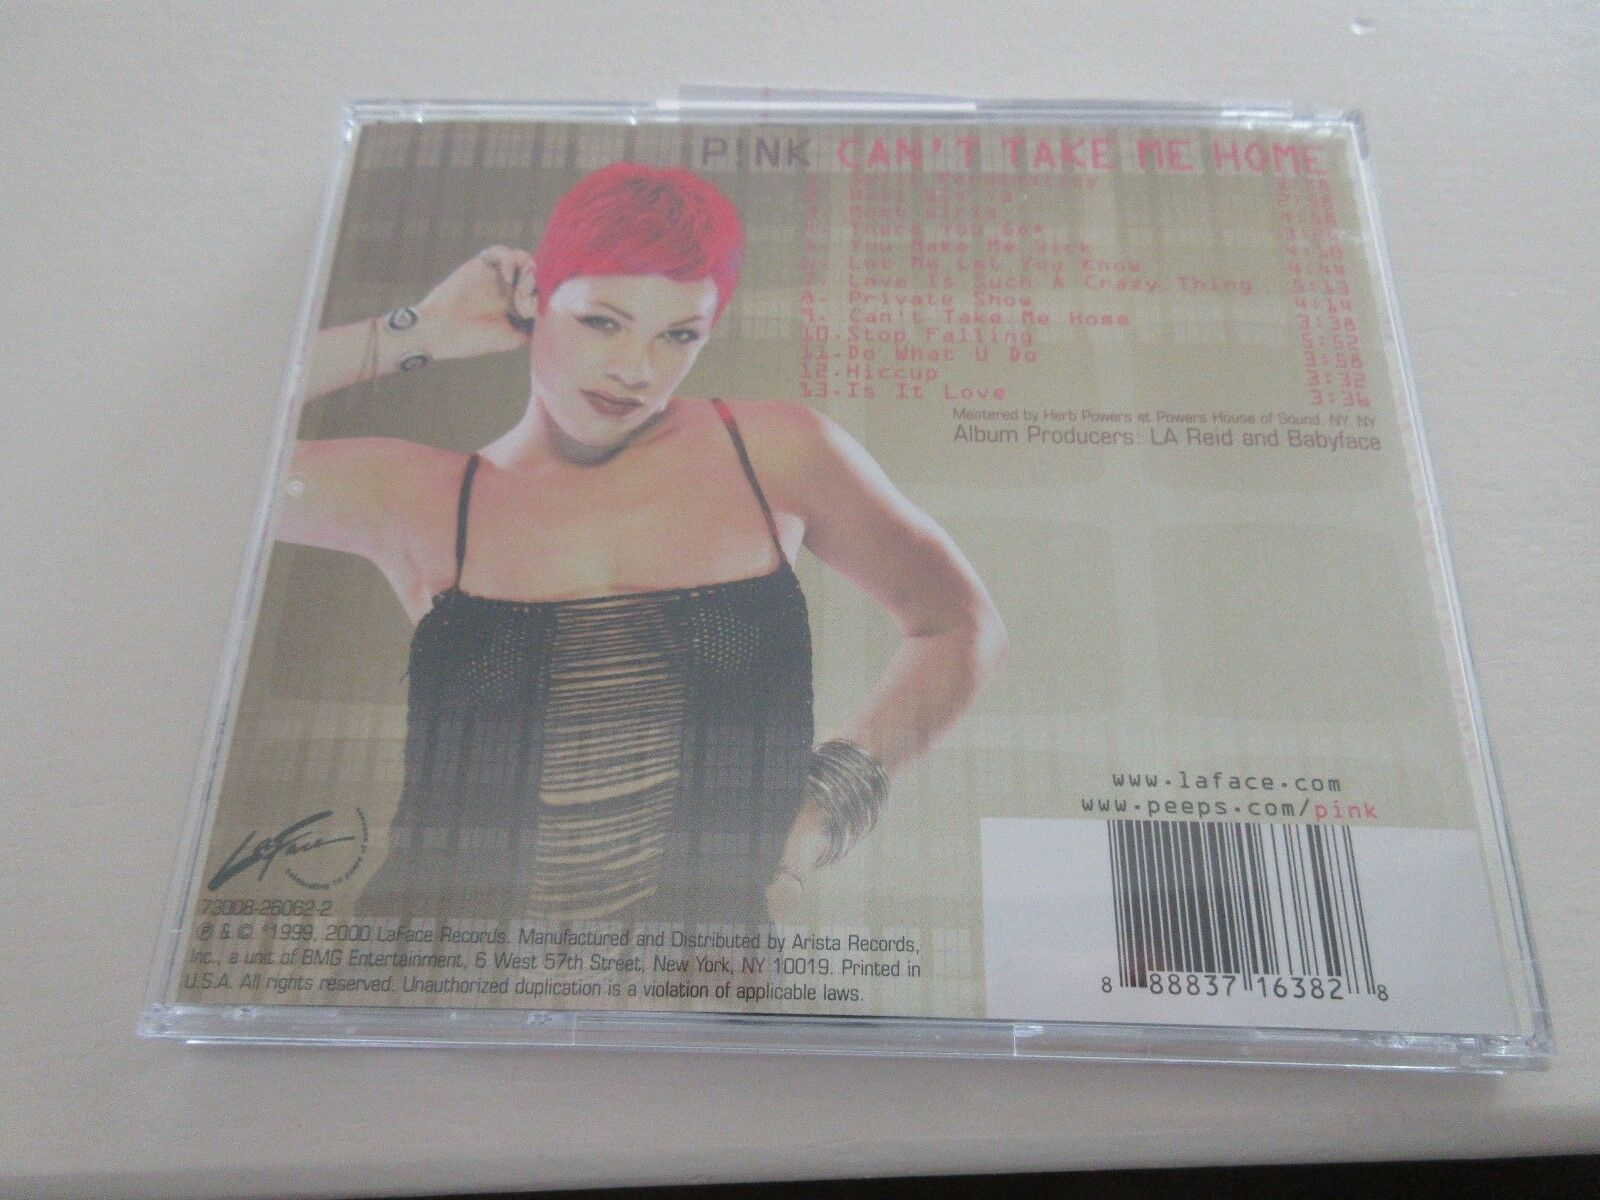 PINK , Can't Take Me Home , CD 888837163828